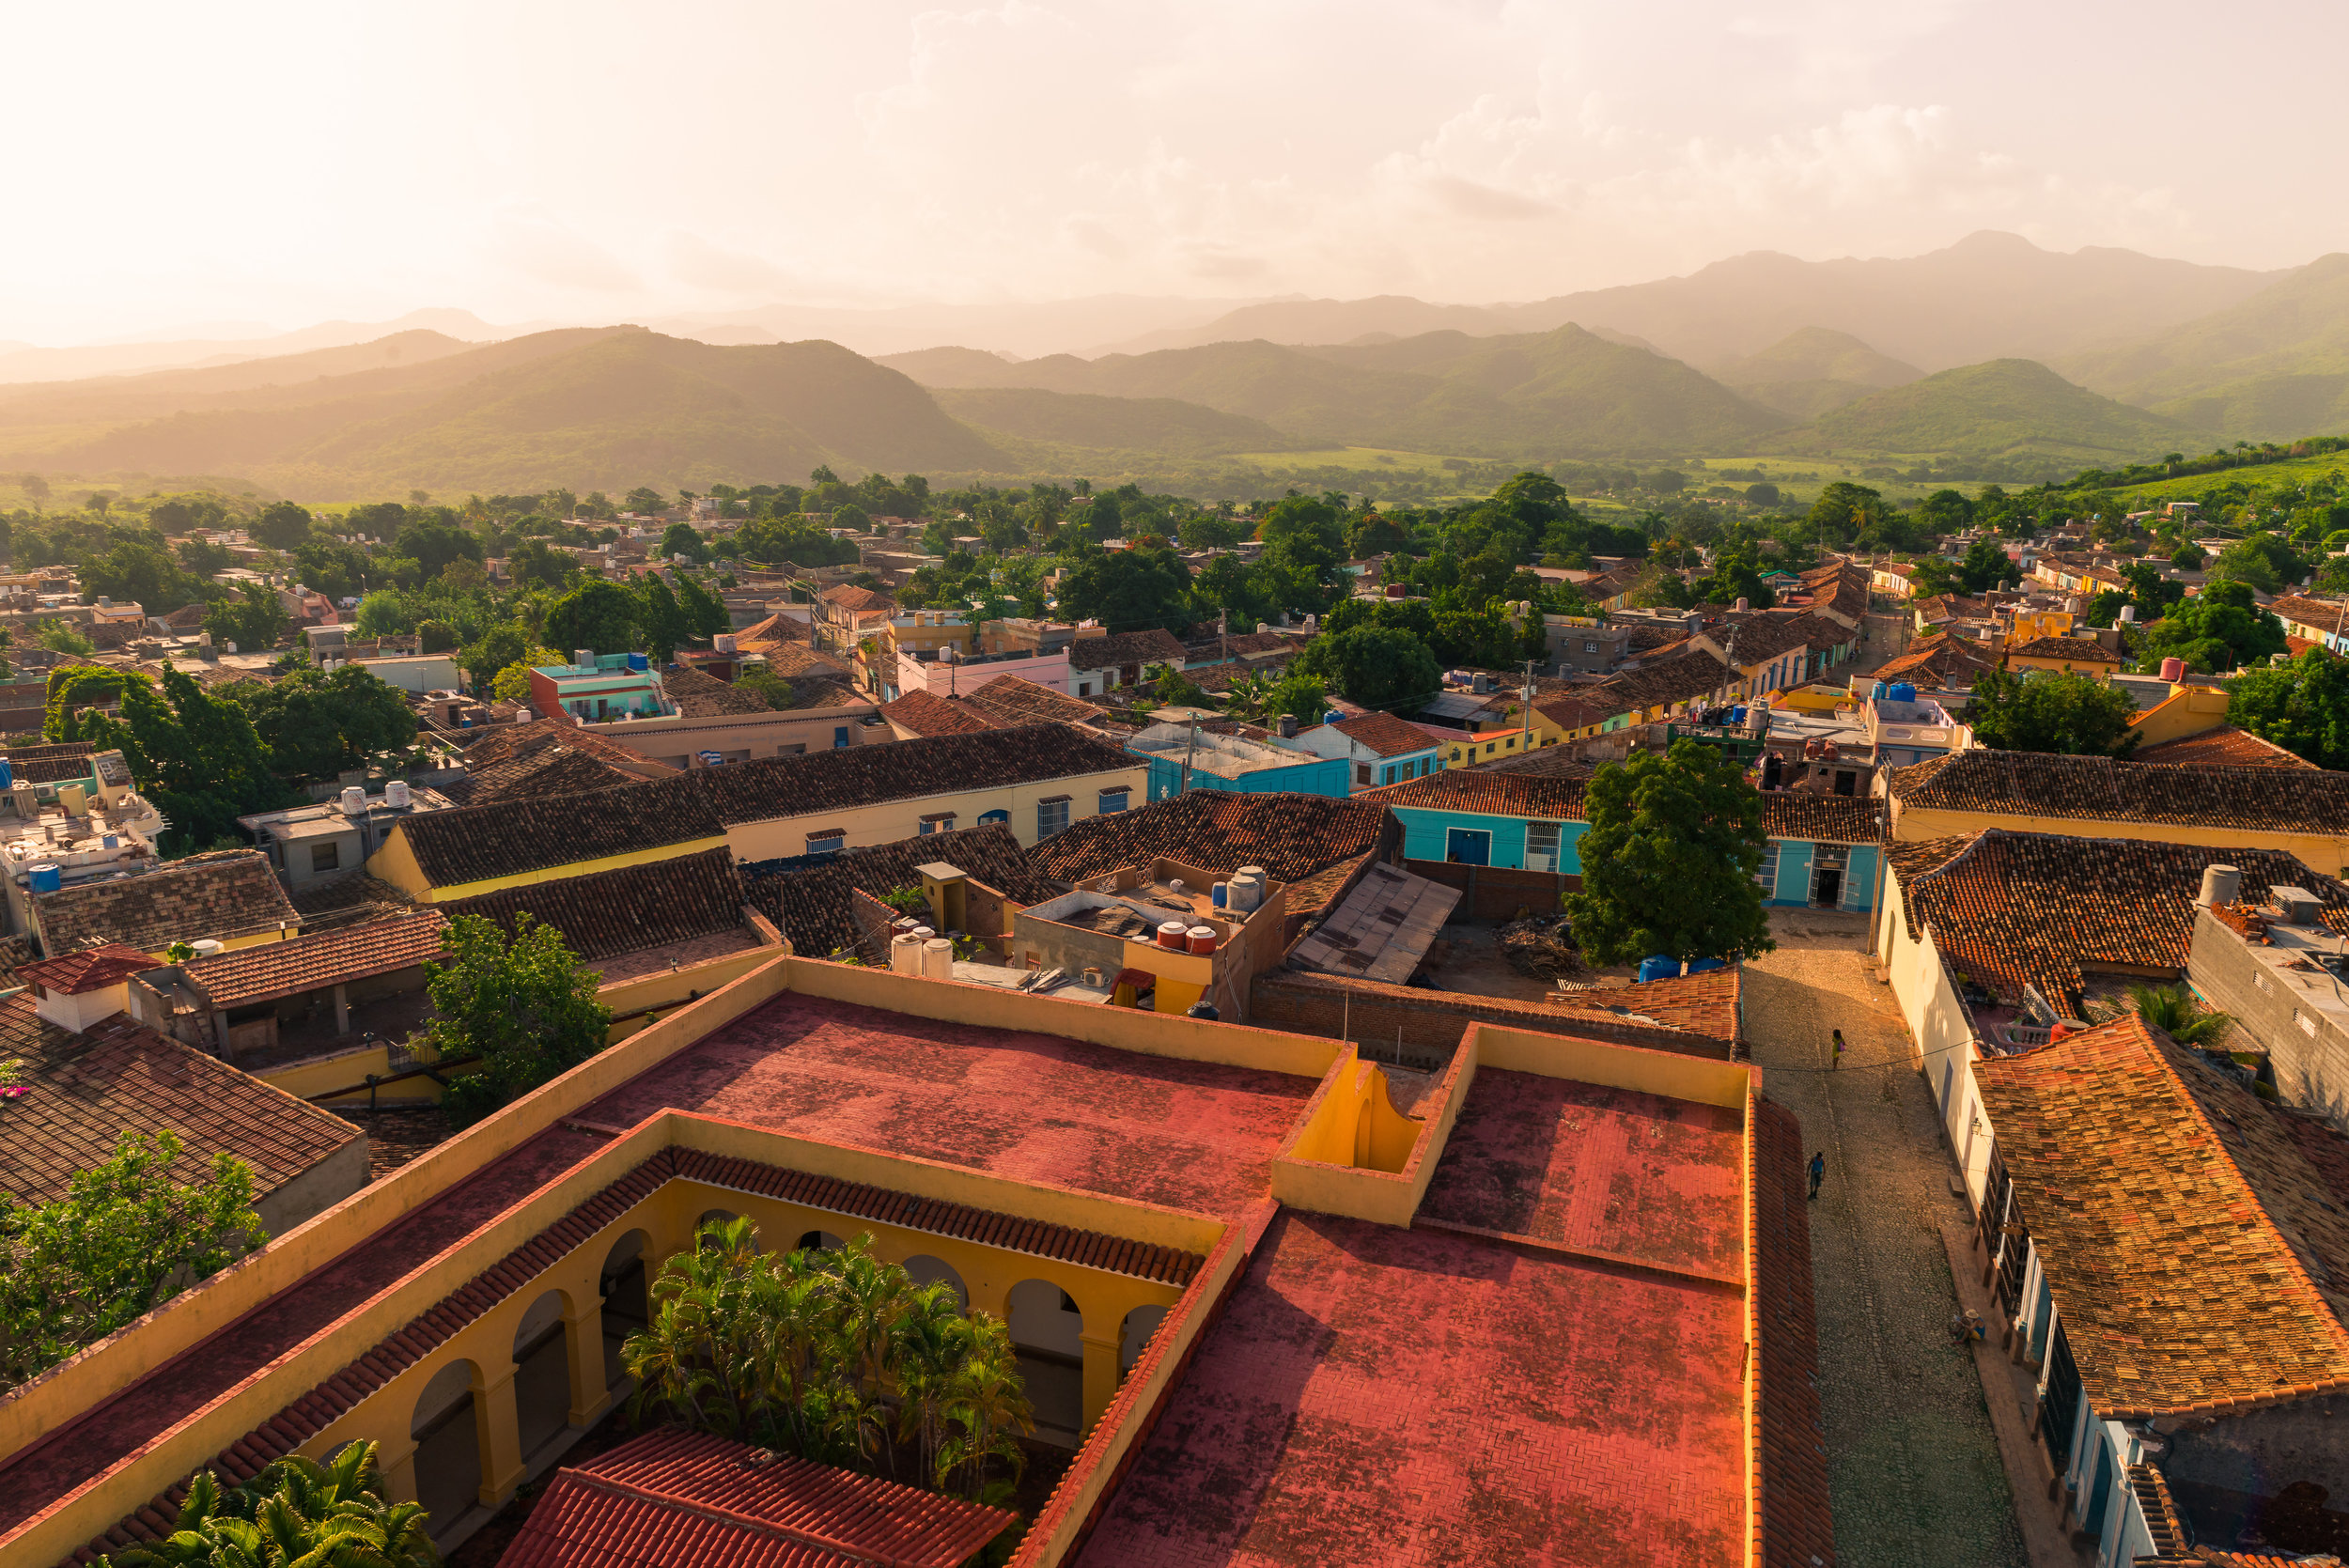 The Rooftops of Trinidad